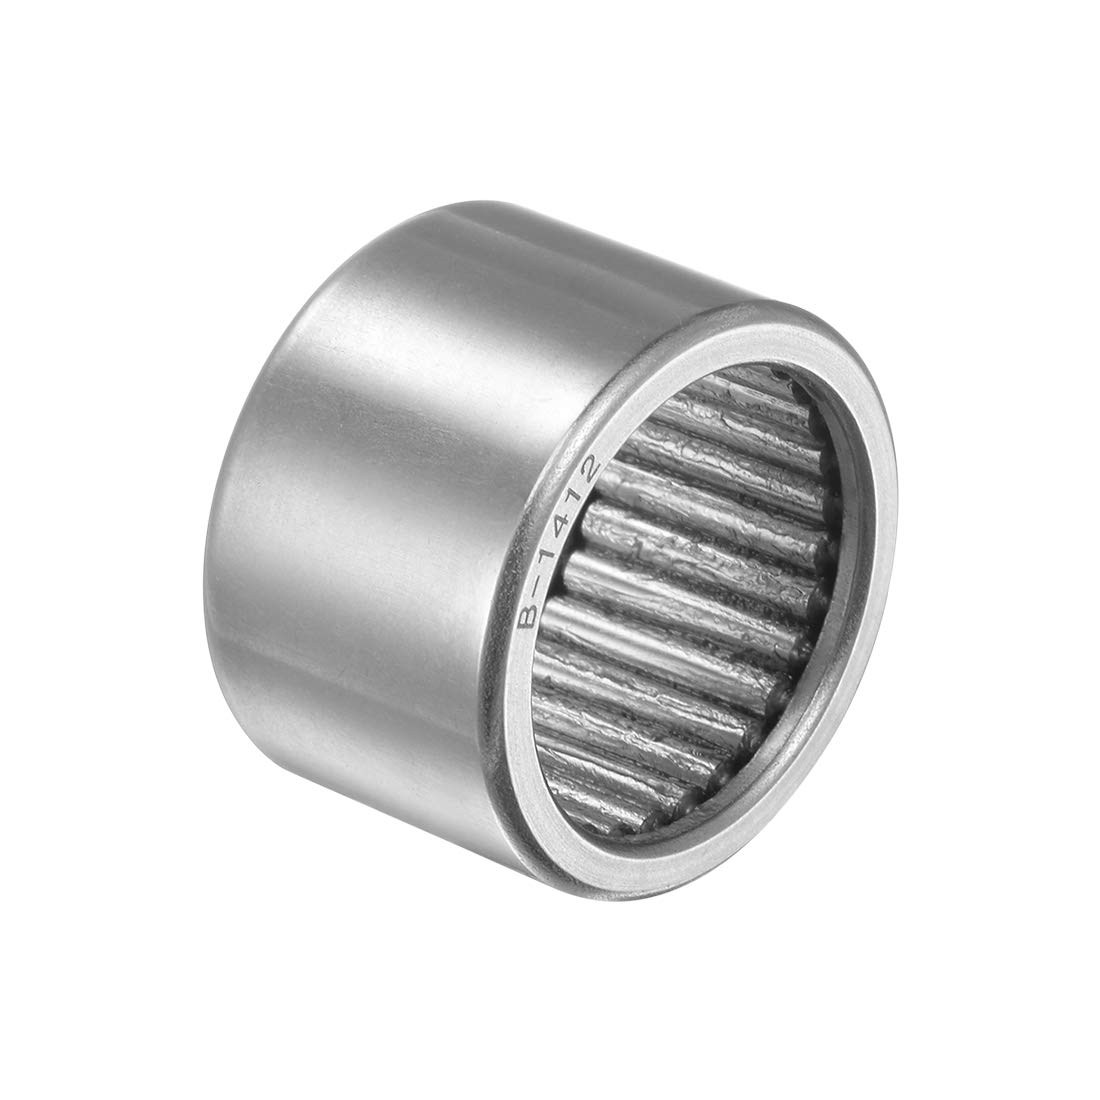 1-1//8-inch OD 1//2-inch Width 5590N Static Load 3370N Dynamic Load 4800Rpm Limiting Speed 7//8-inch I.D Full Complement Drawn Cup uxcell B148 Needle Roller Bearings Open